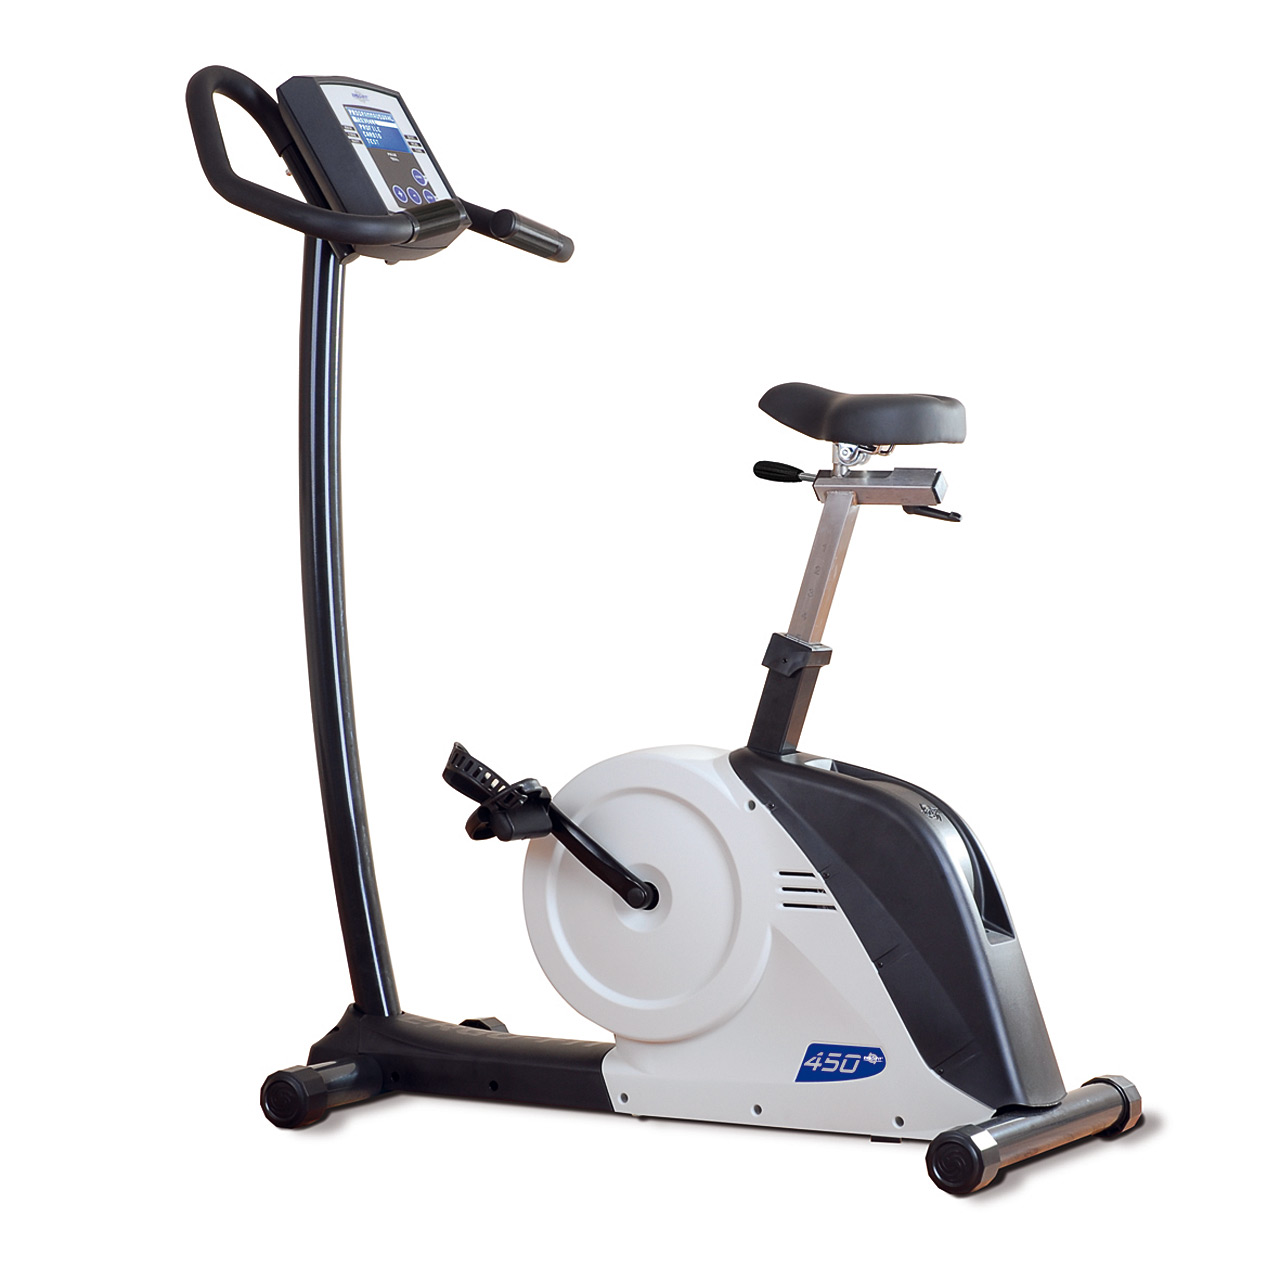 ERGO-FIT Cycle 400/450 Home